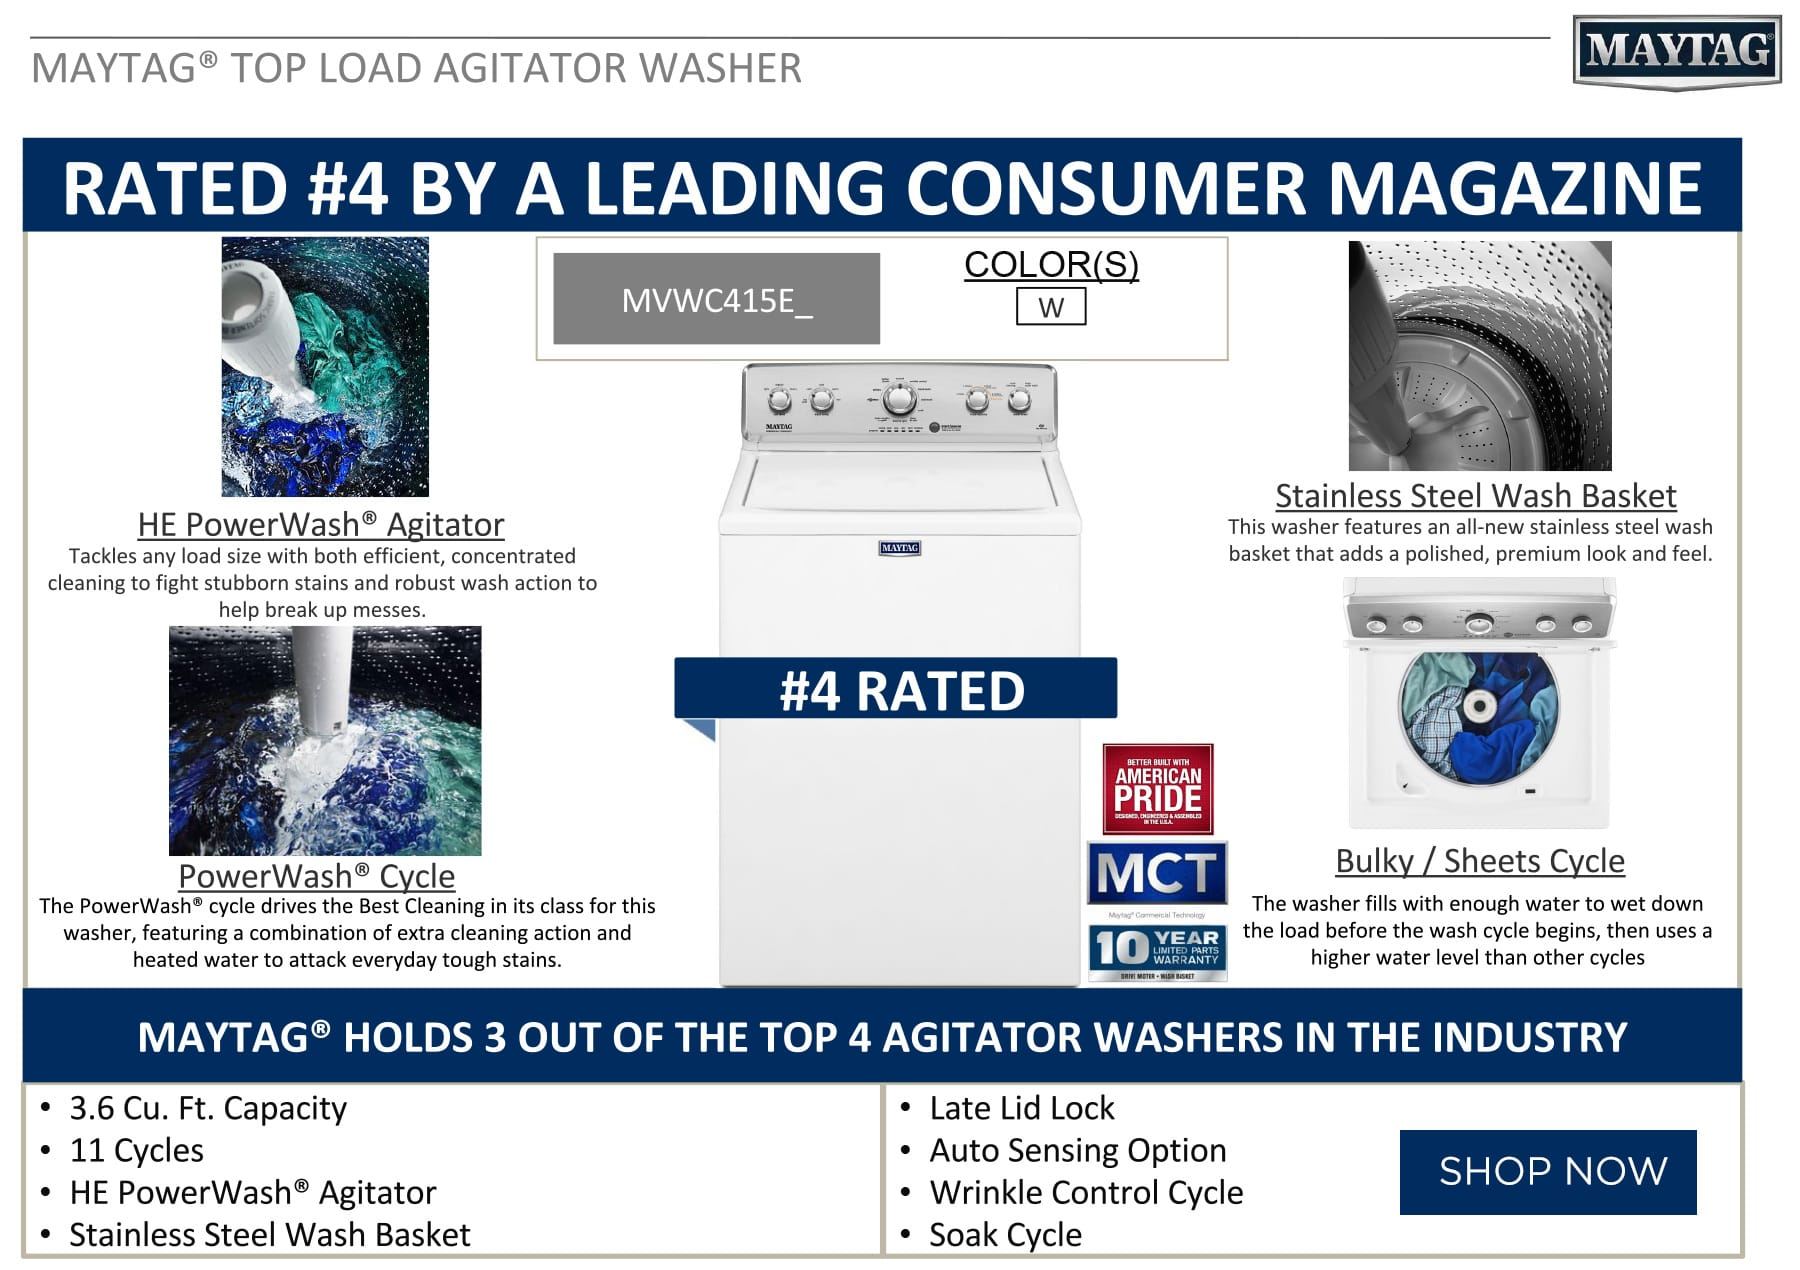 Maytag Washer Rated #4